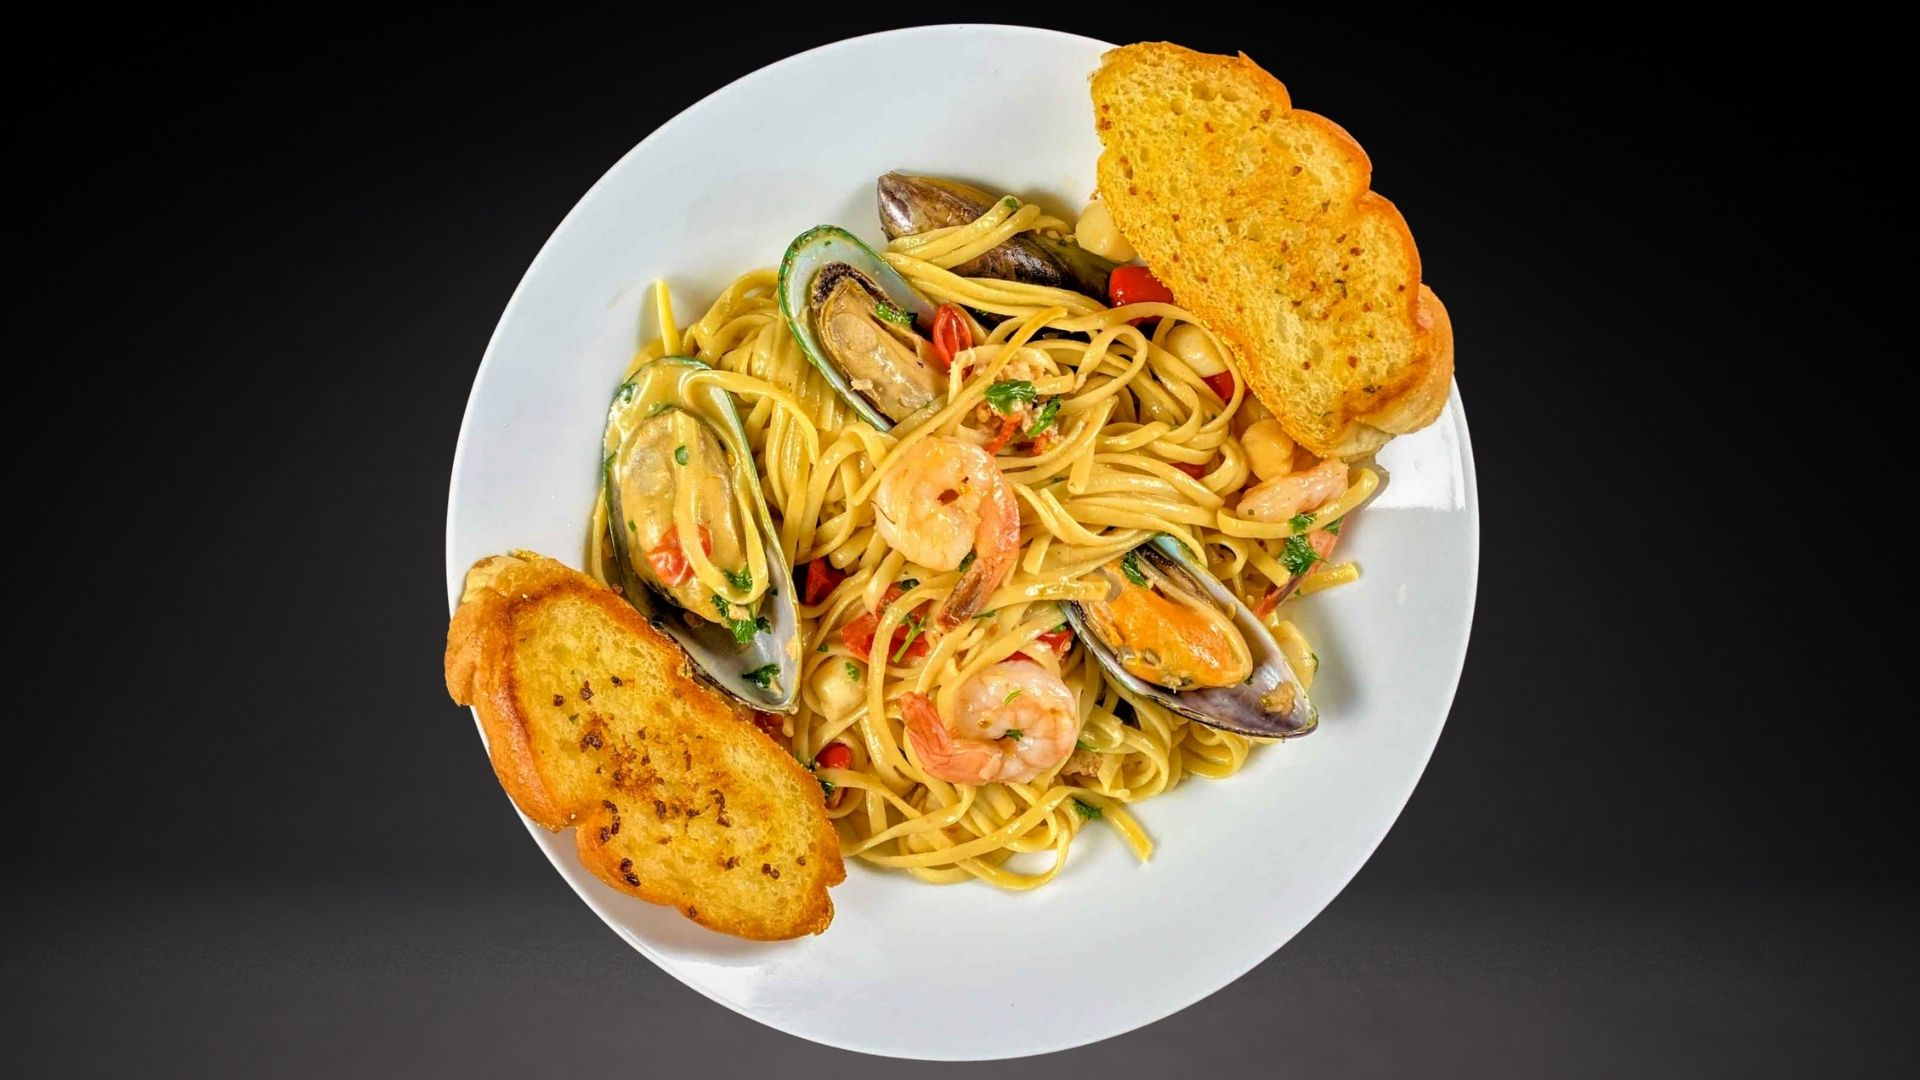 Pier53 - Seafood Pasta Mussels